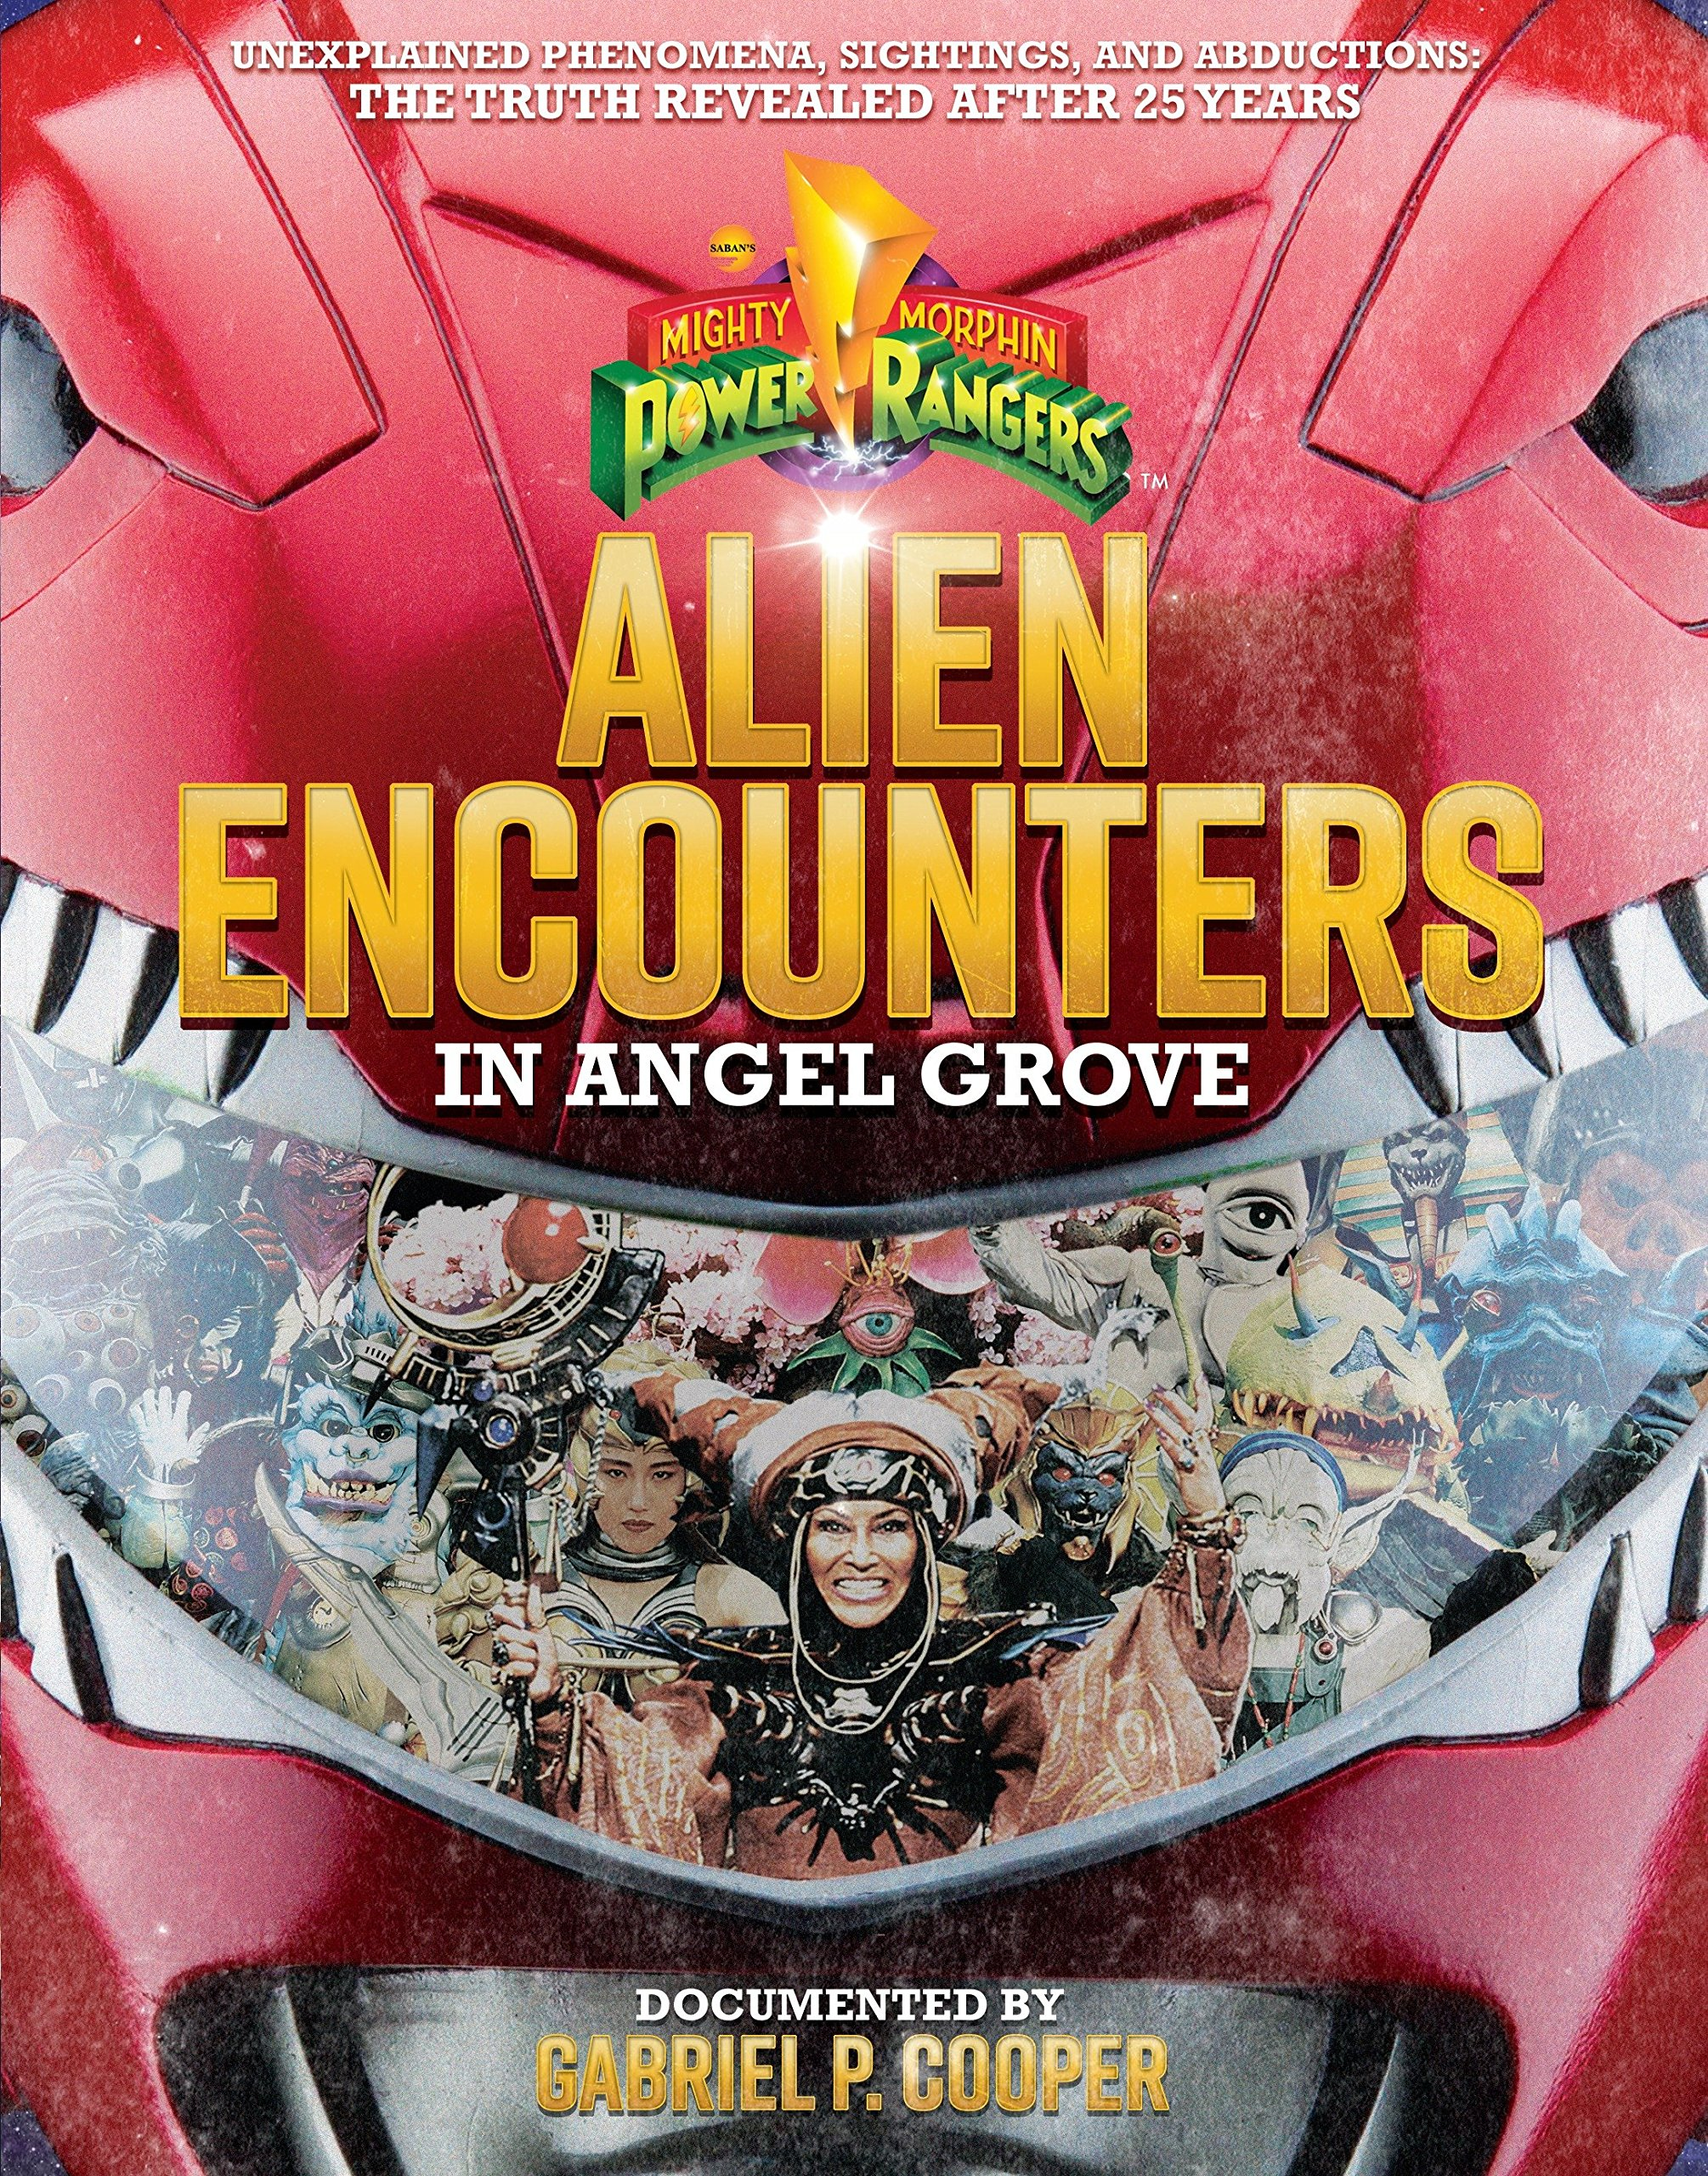 Alien Encounters in Angel Grove (Power Rangers) by Penguin Young Readers Licenses (Image #1)